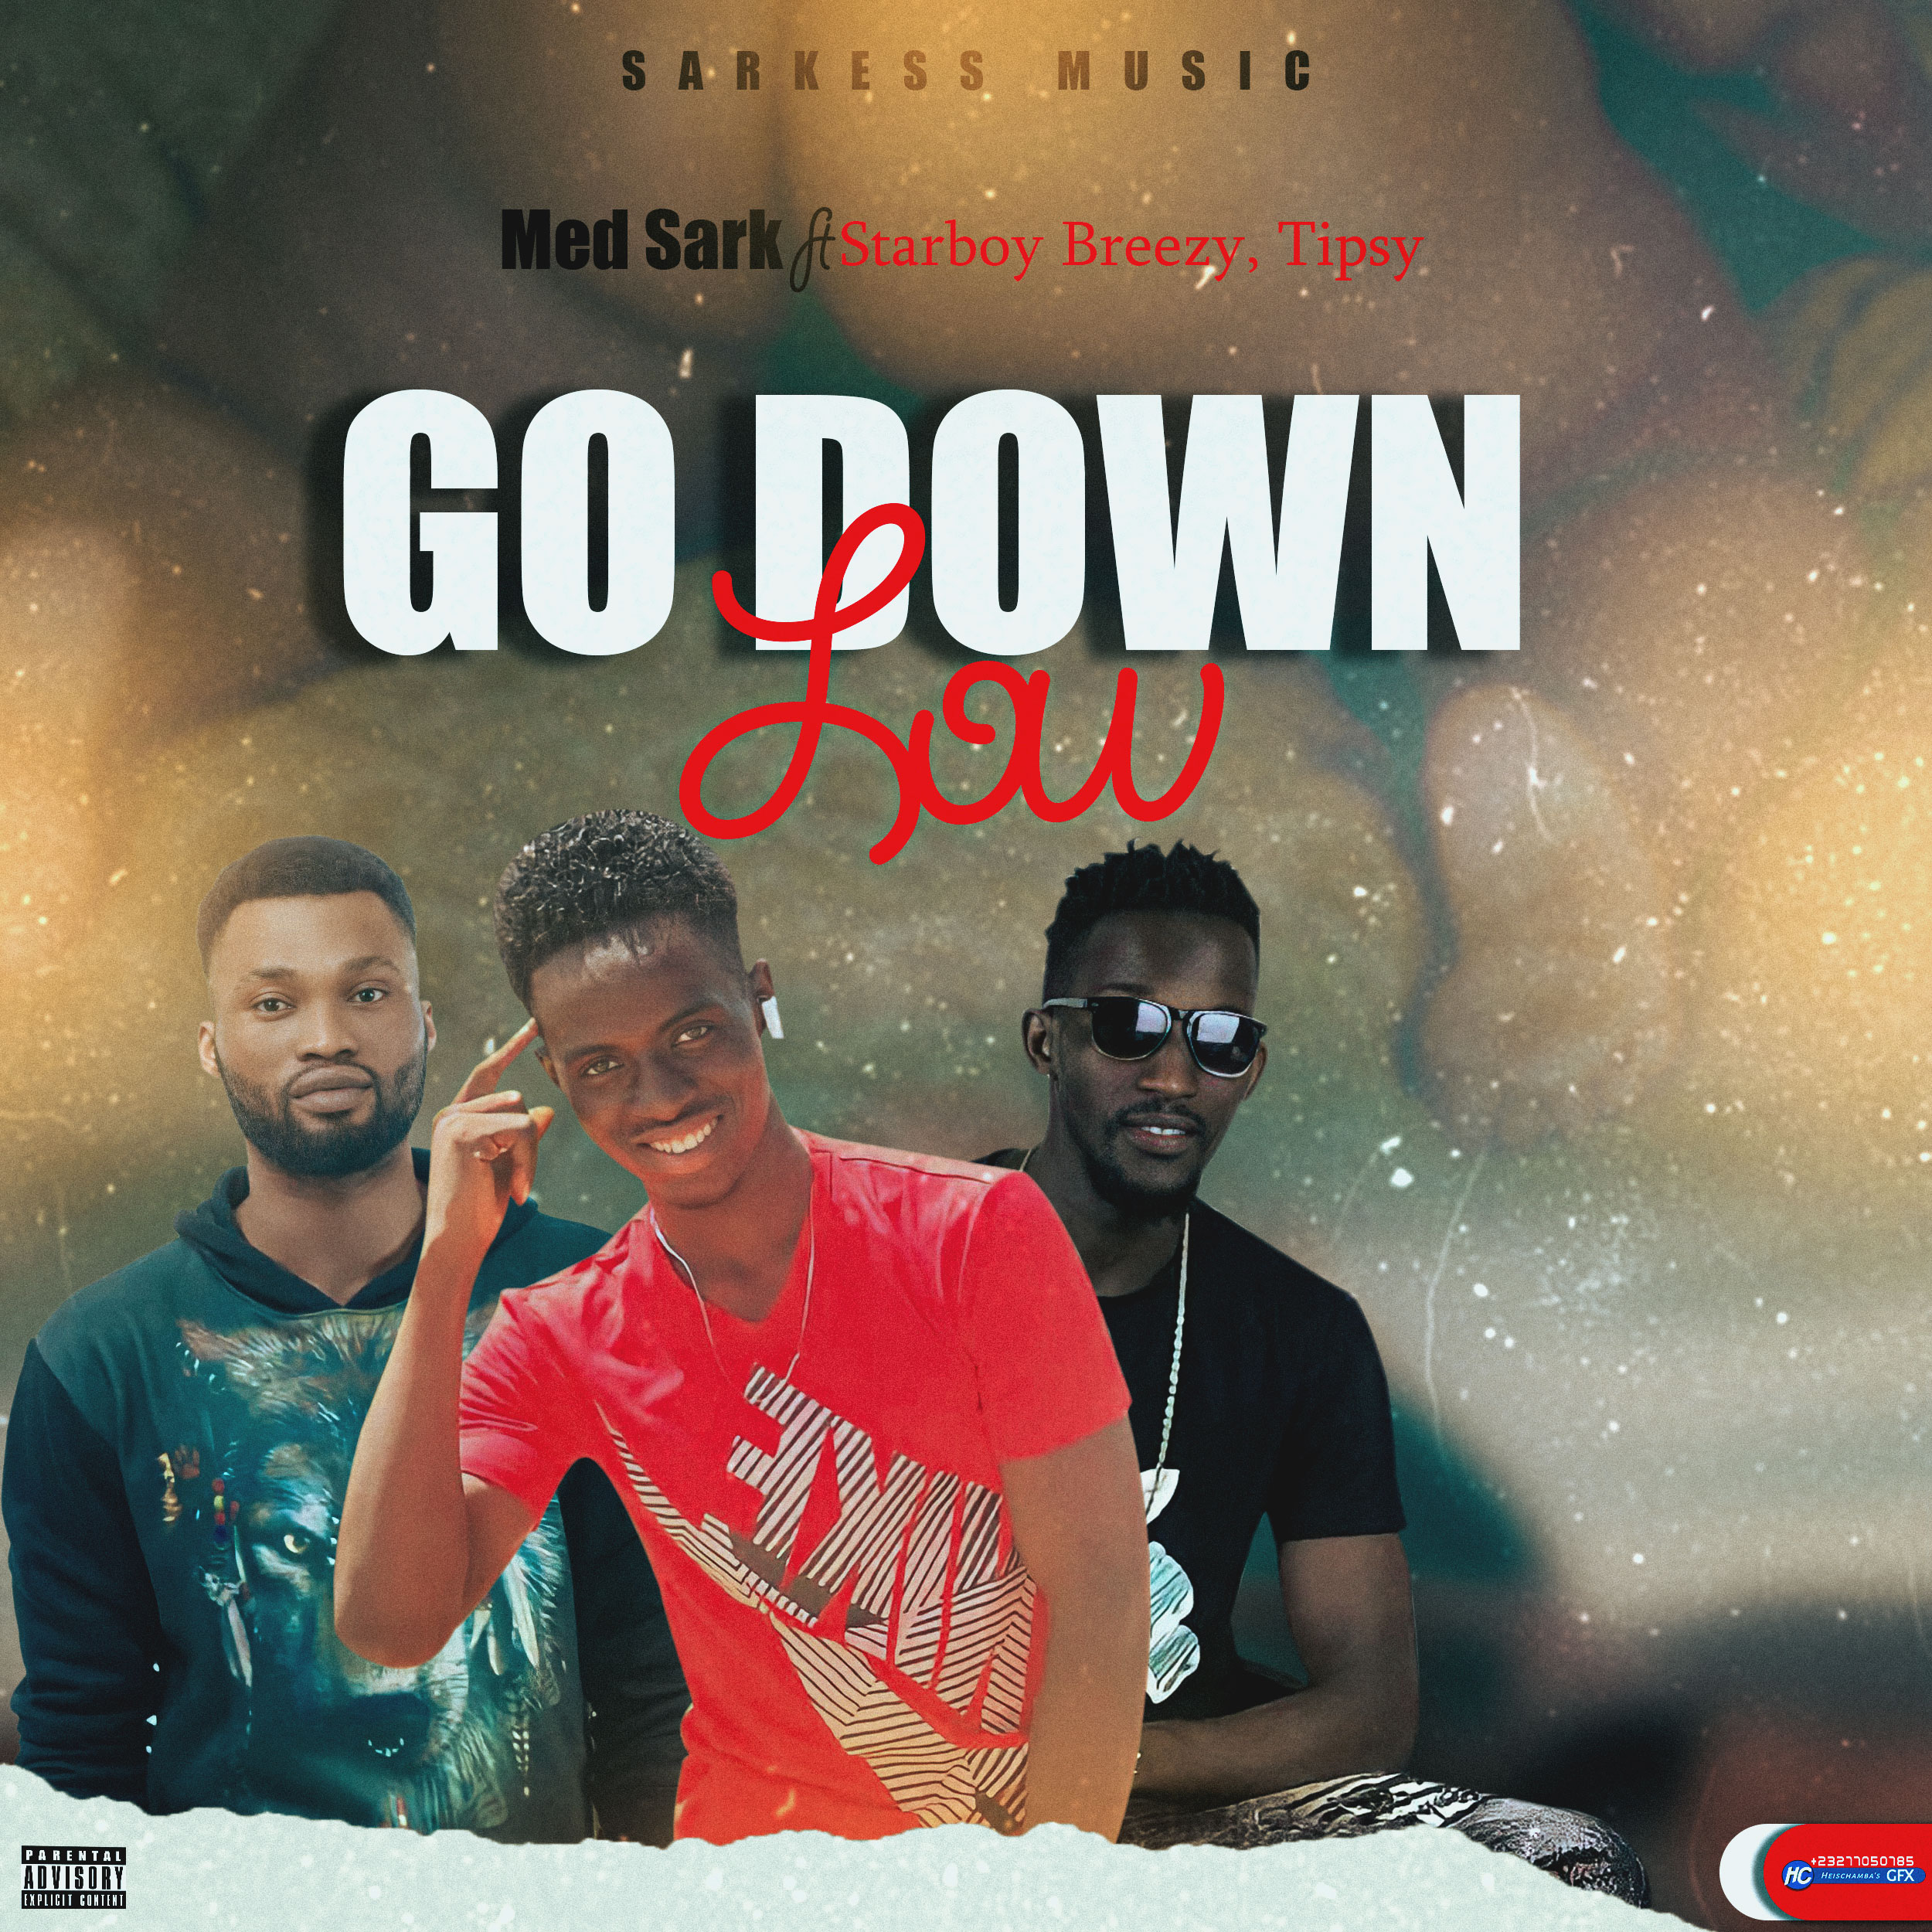 Med sark-Go down low feat Starboybreezy,Tipsy